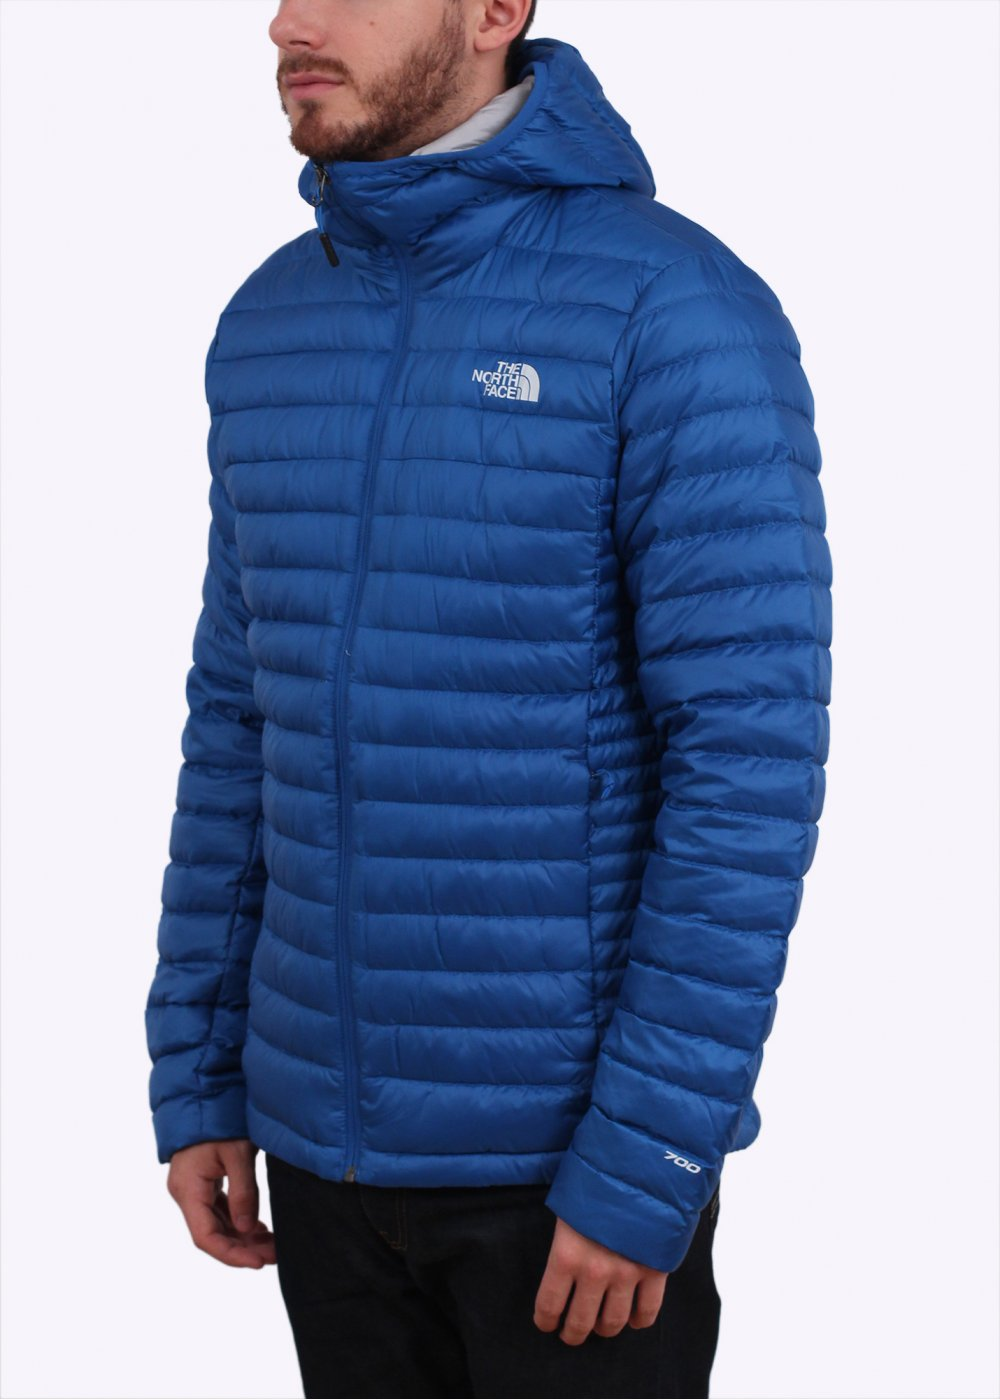 blue north face jacket